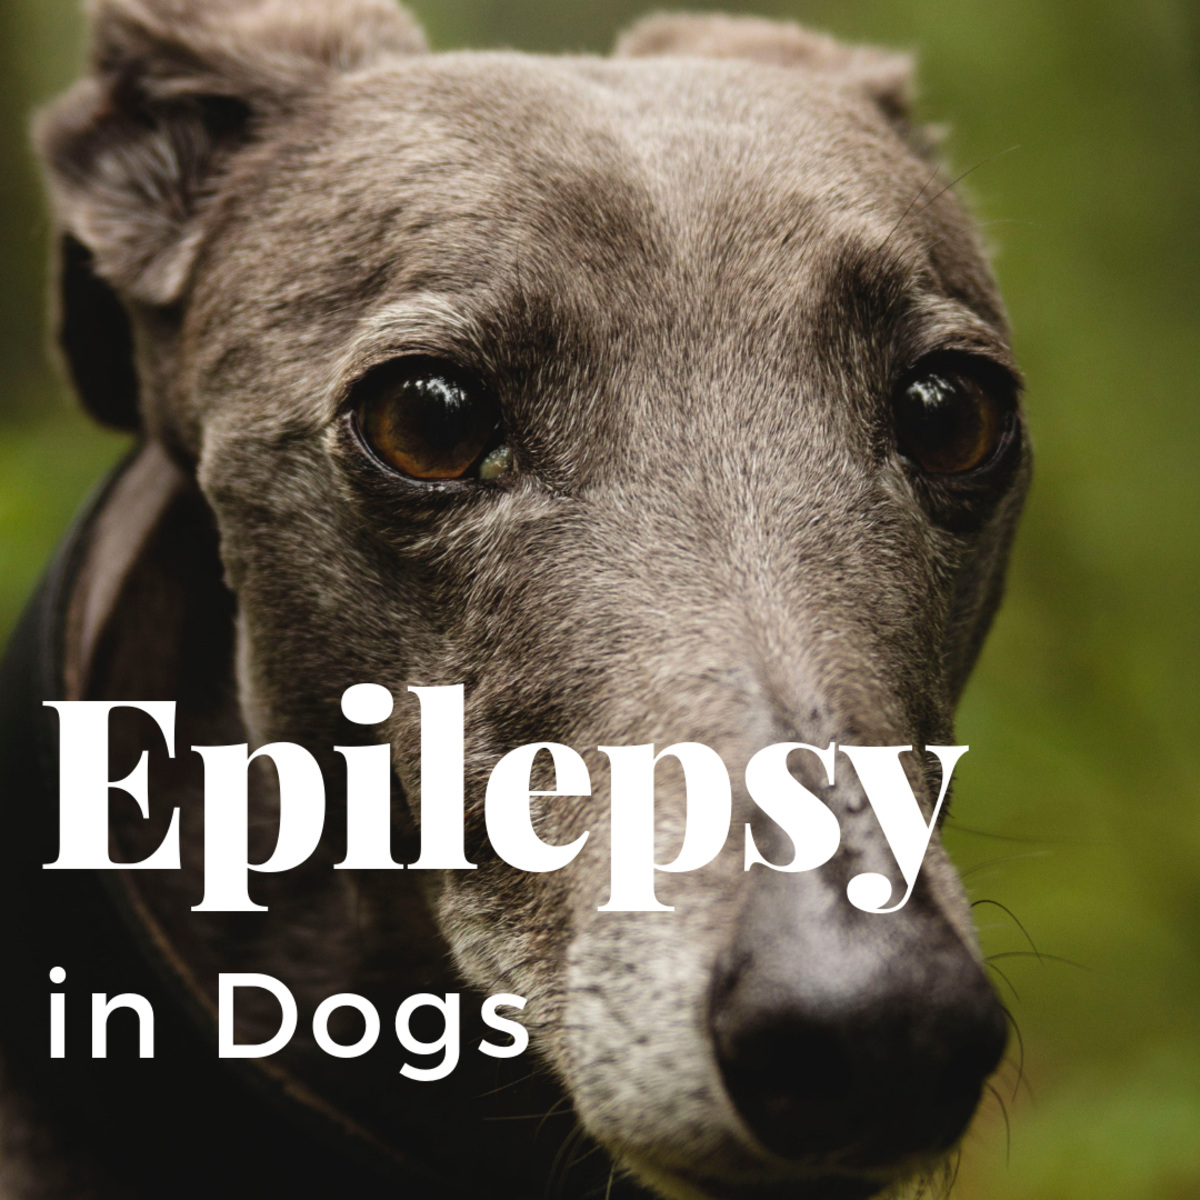 Tips for Pet Owners: My Greyhound Has Epilepsy